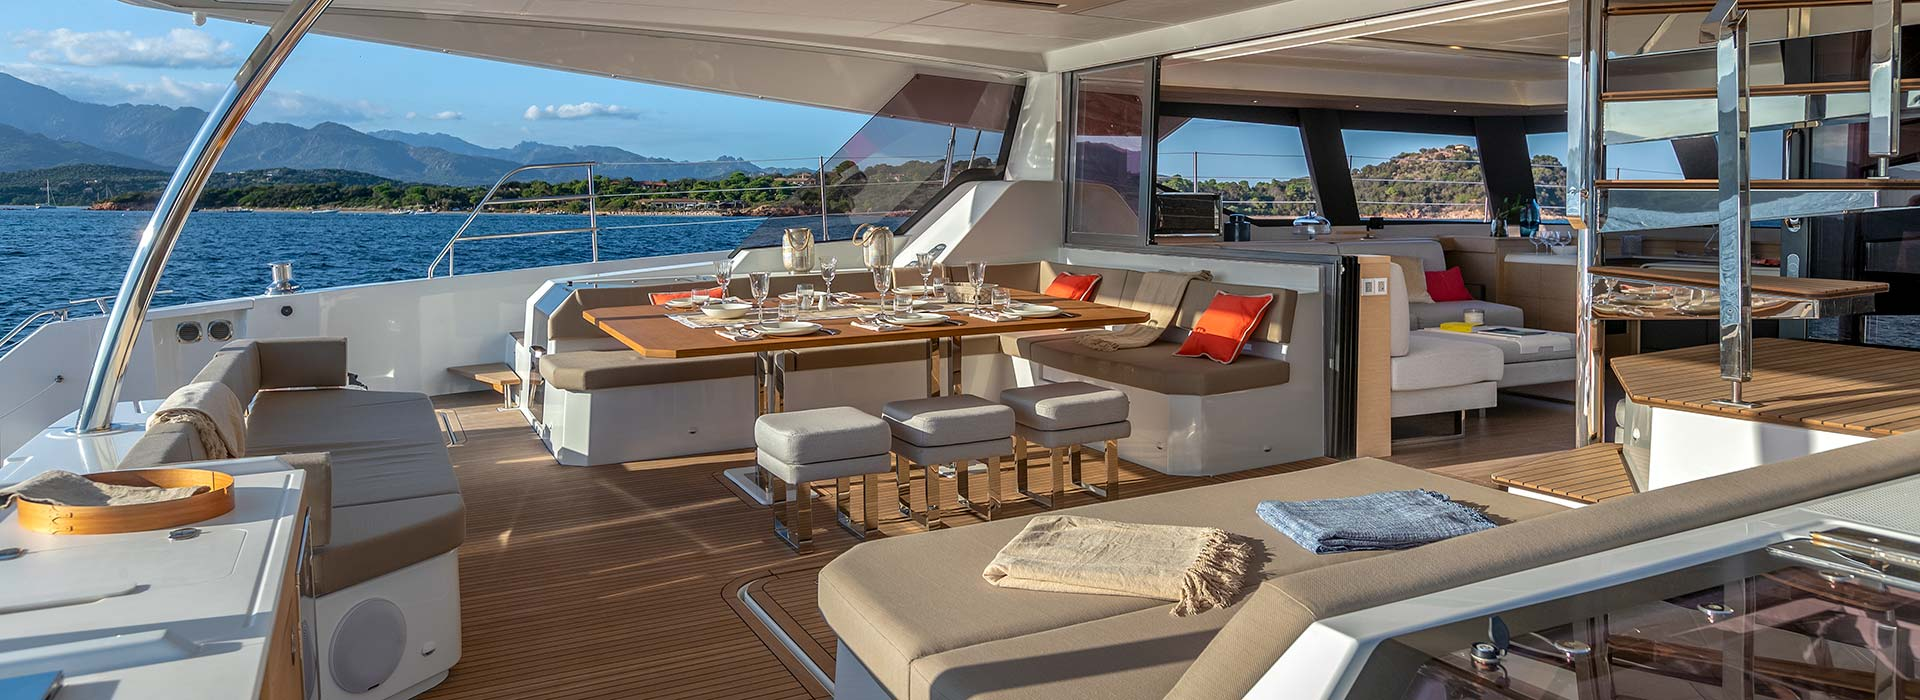 fully crewed yacht which allows you to relax